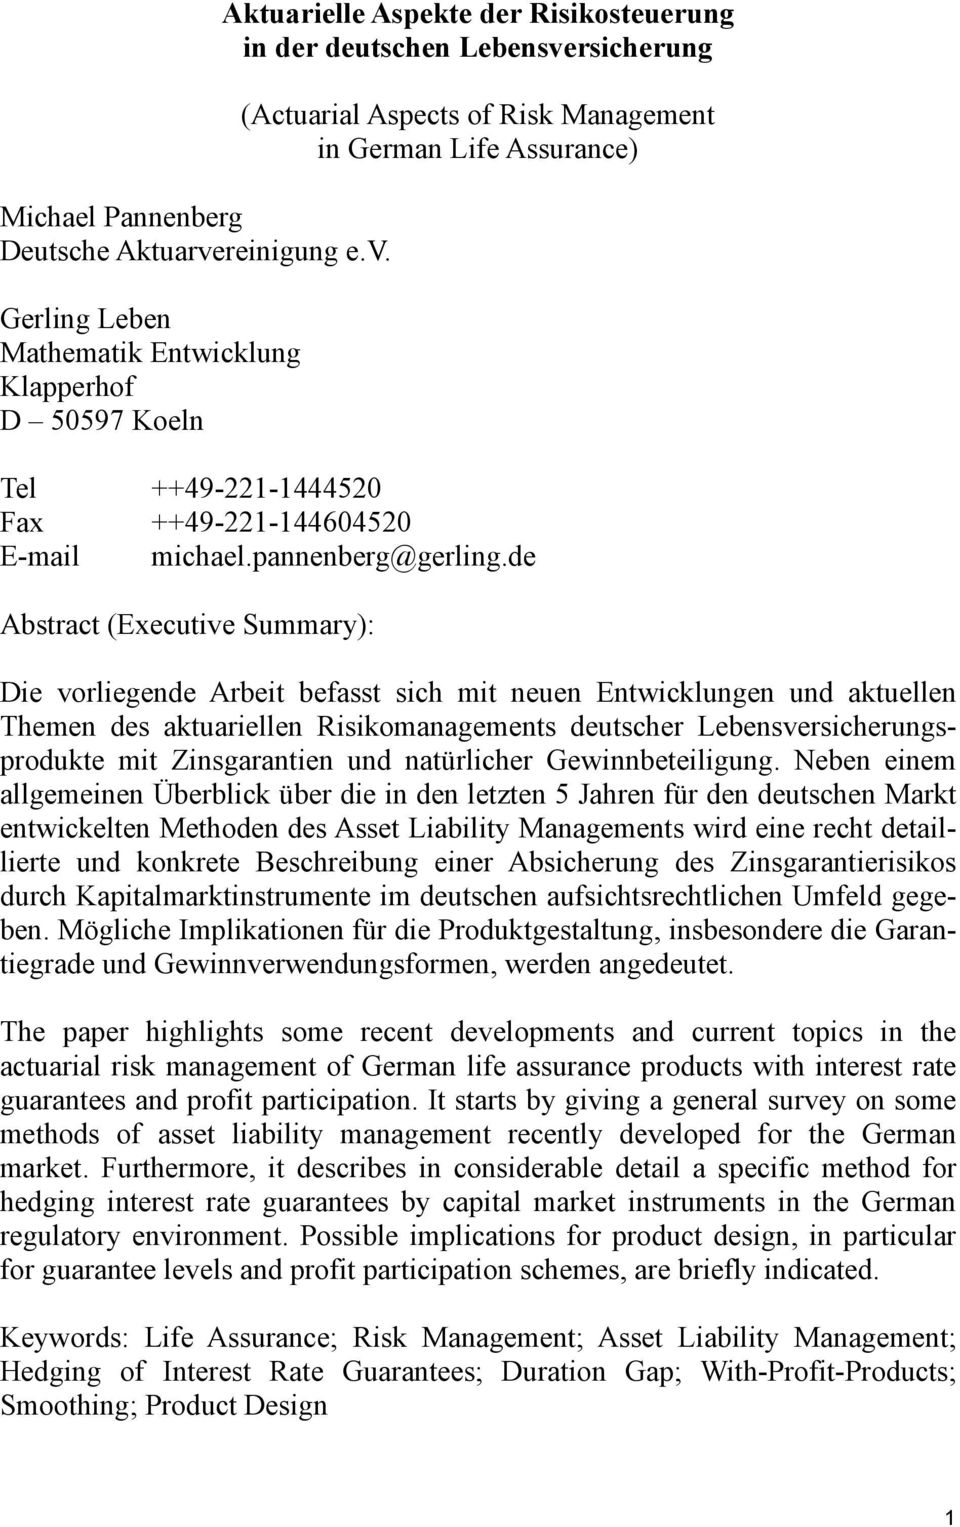 Gerling Leben Mathematik Entwicklung Klapperhof D 50597 Koeln Aktuarielle Aspekte der Risikosteuerung in der deutschen Lebensversicherung (Actuarial Aspects of Risk Management in German Life